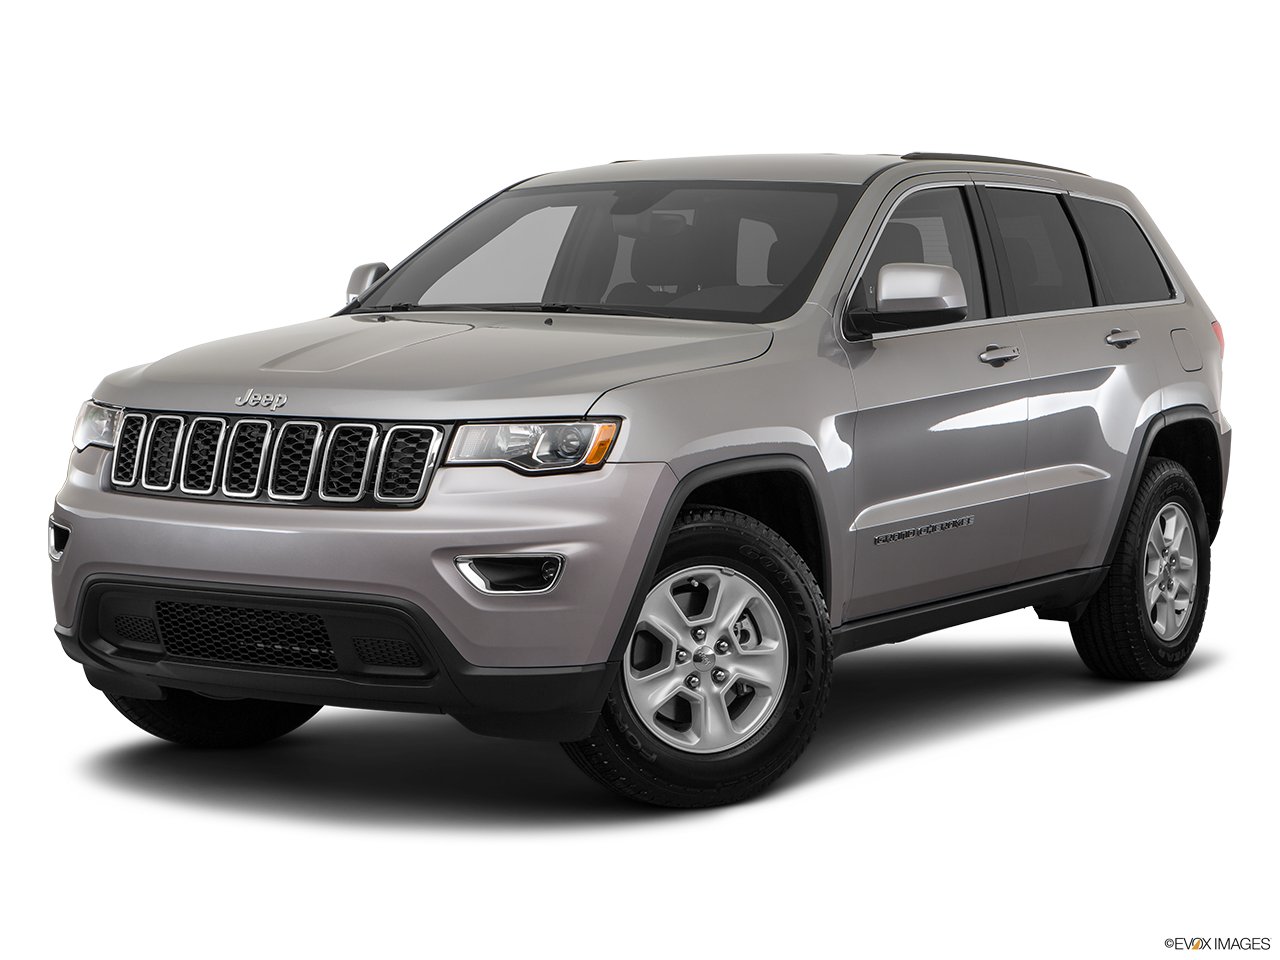 new 2017 jeep grand cherokee nashville chrysler dodge jeep ram. Black Bedroom Furniture Sets. Home Design Ideas